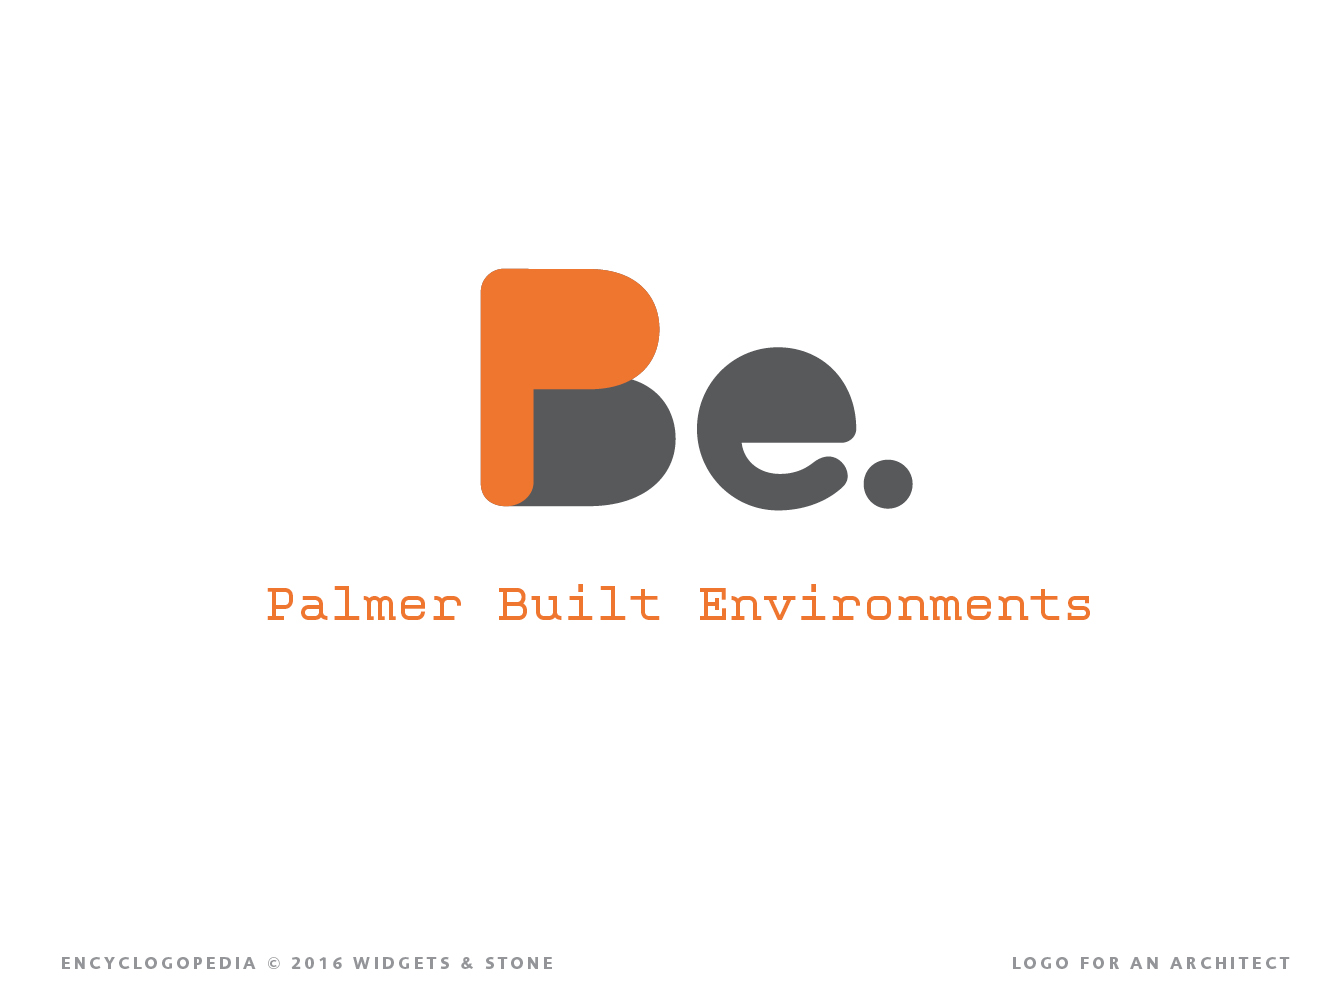 Copy of Palmer Built Environments design logotype brand logo